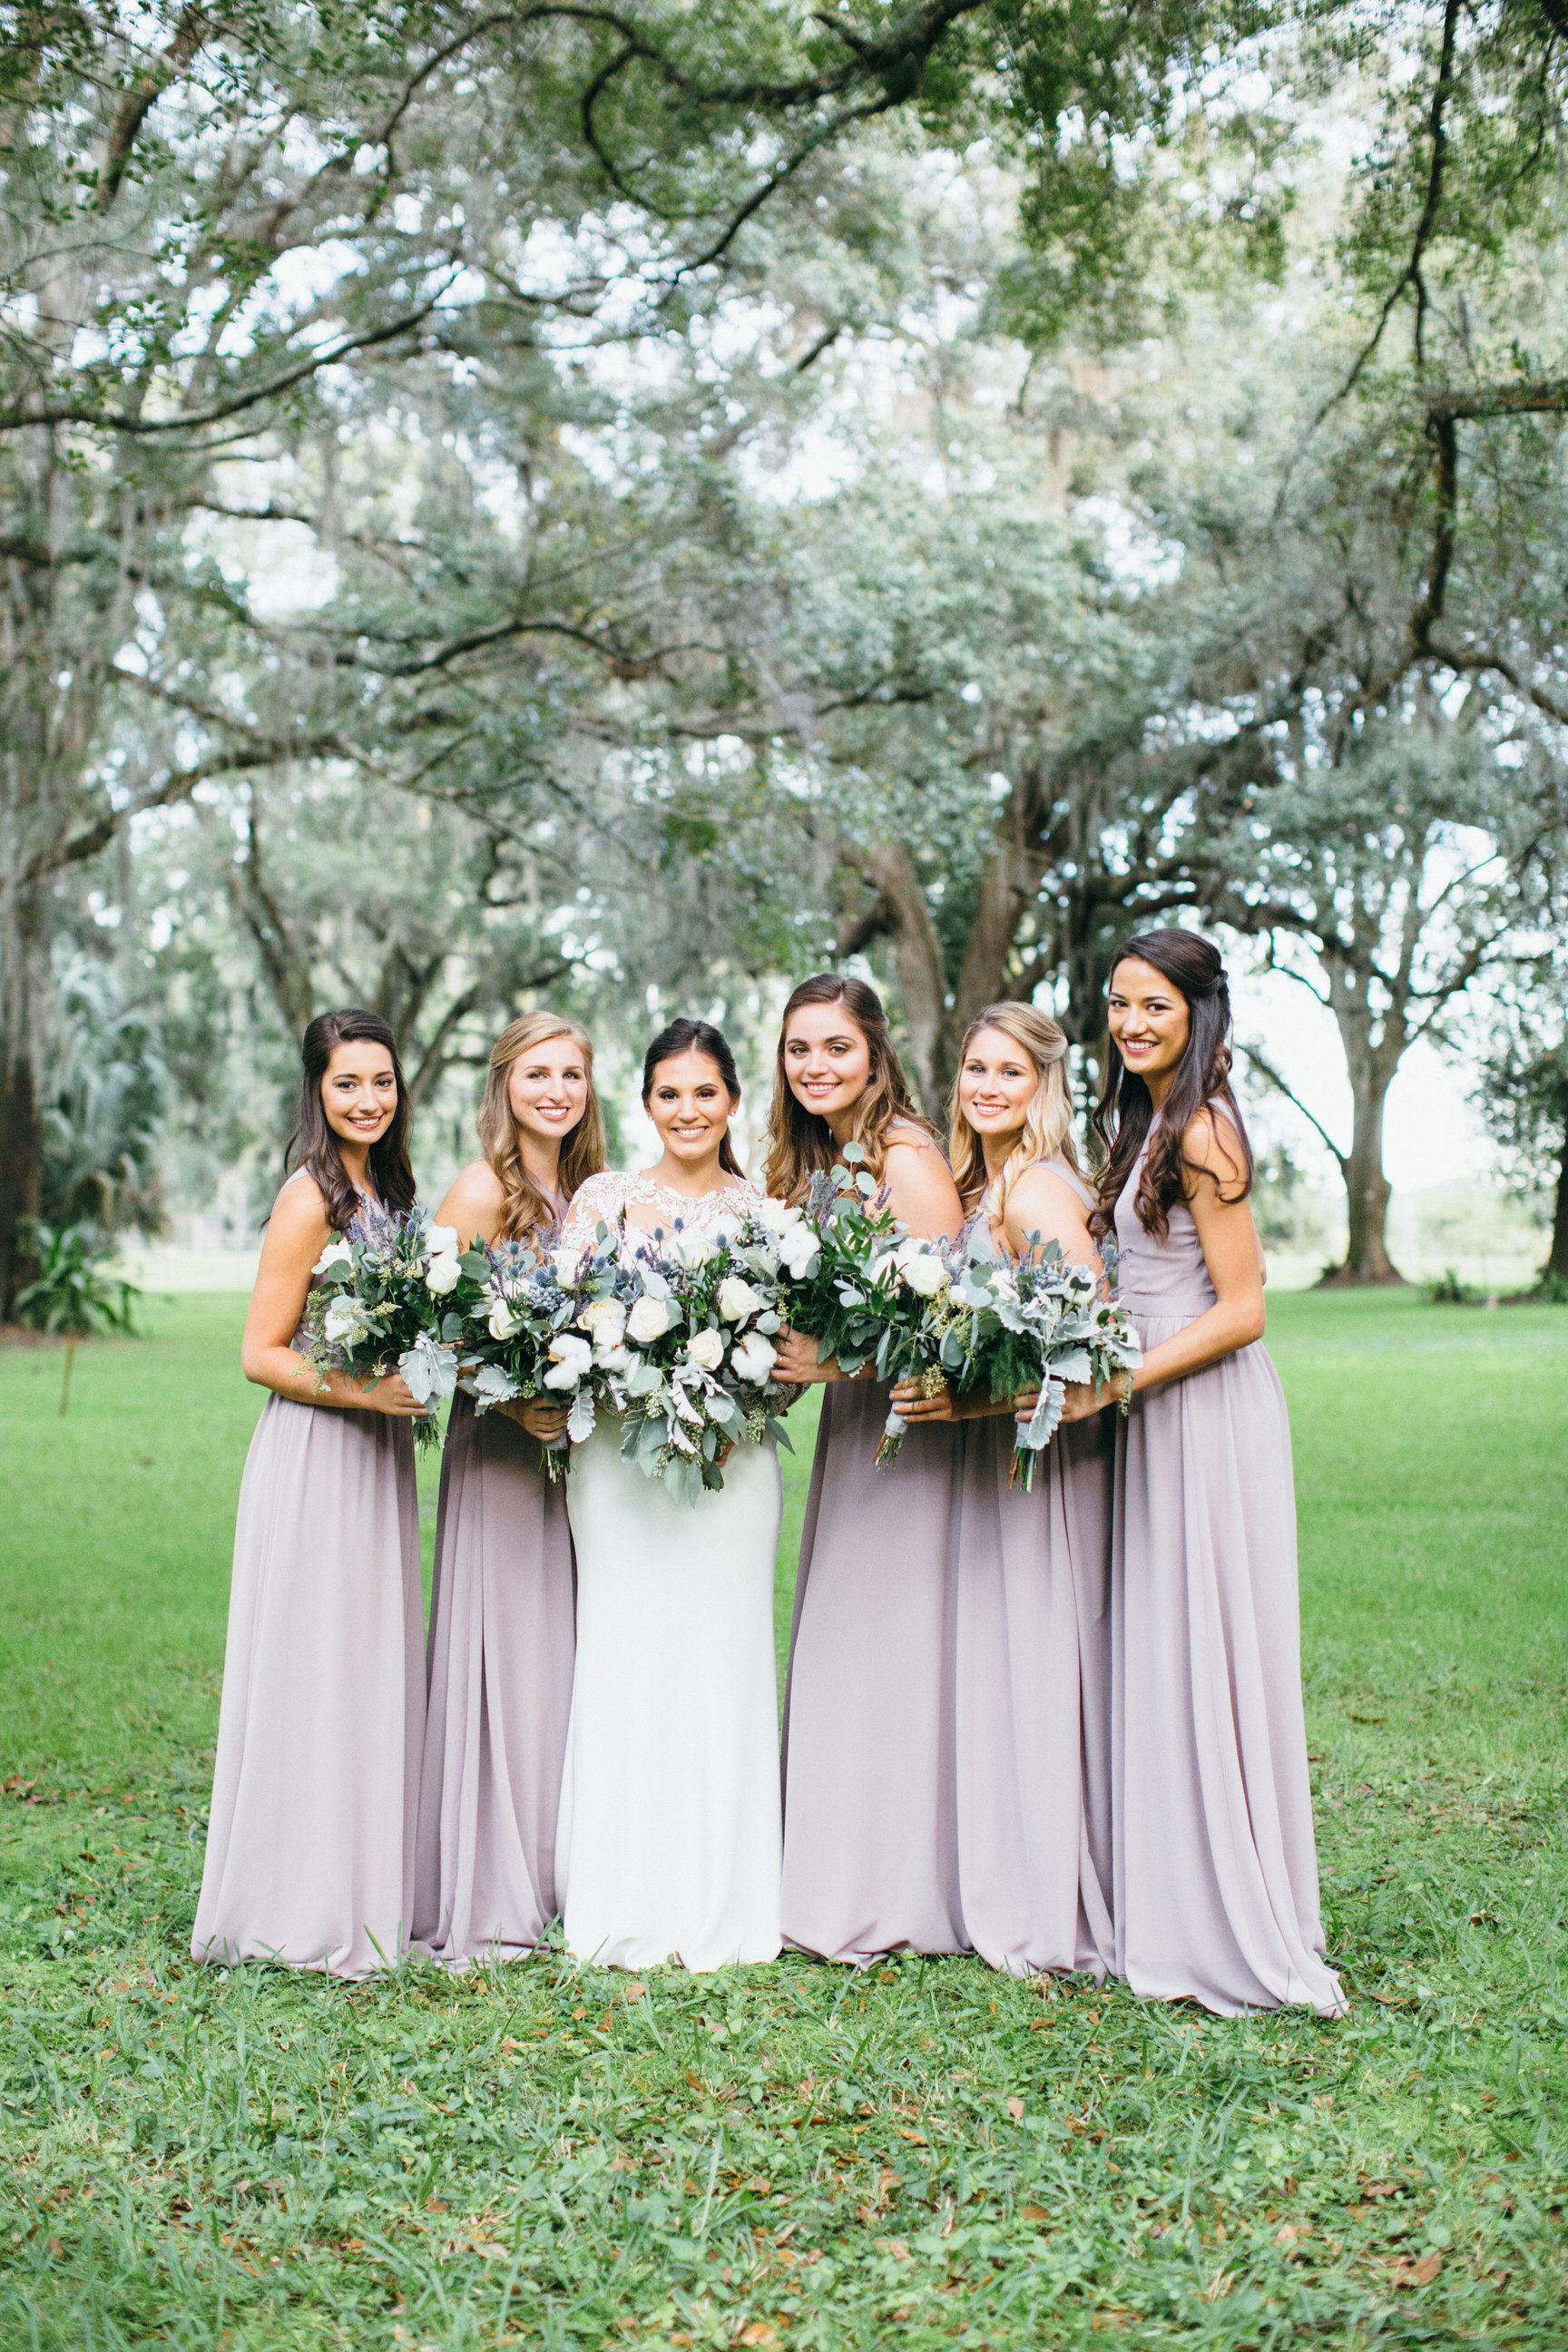 Wedding Bridesmaids Plant City Florida Photographer Benjamin Hewitt Photography